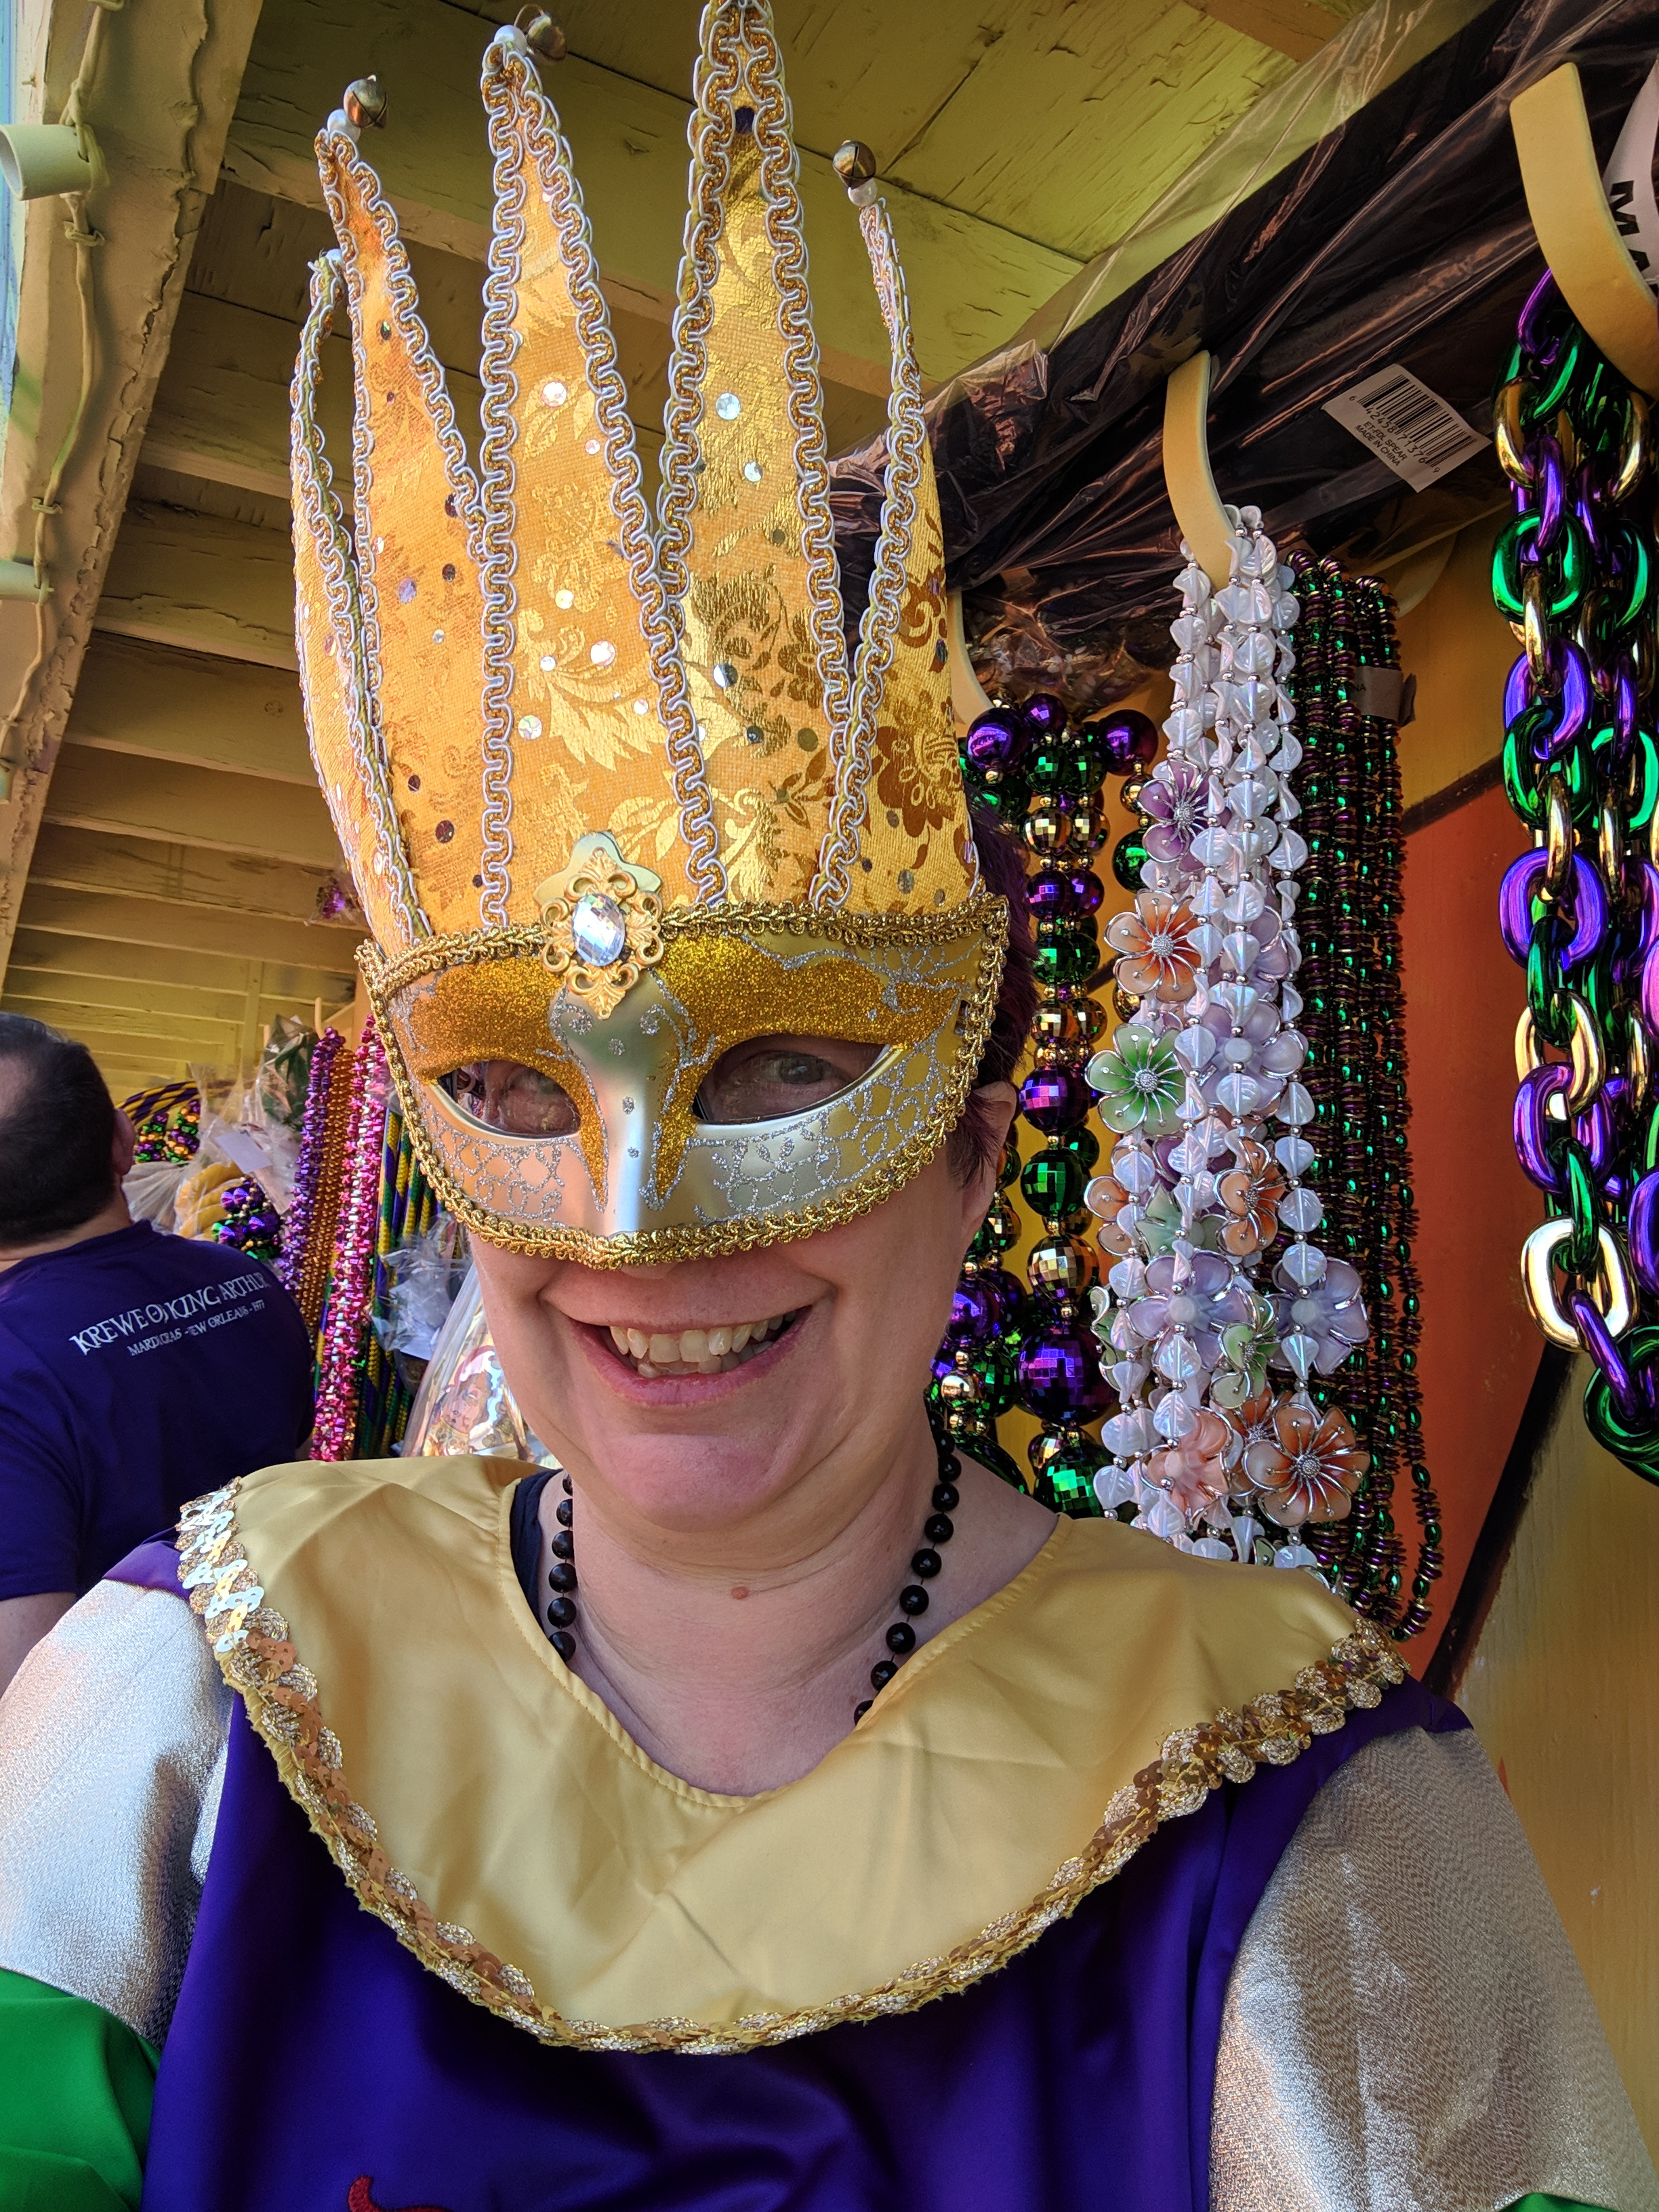 Our tunics mark us as Krewe of King Arthur; our masks tell you who's in charge of our particular floats.